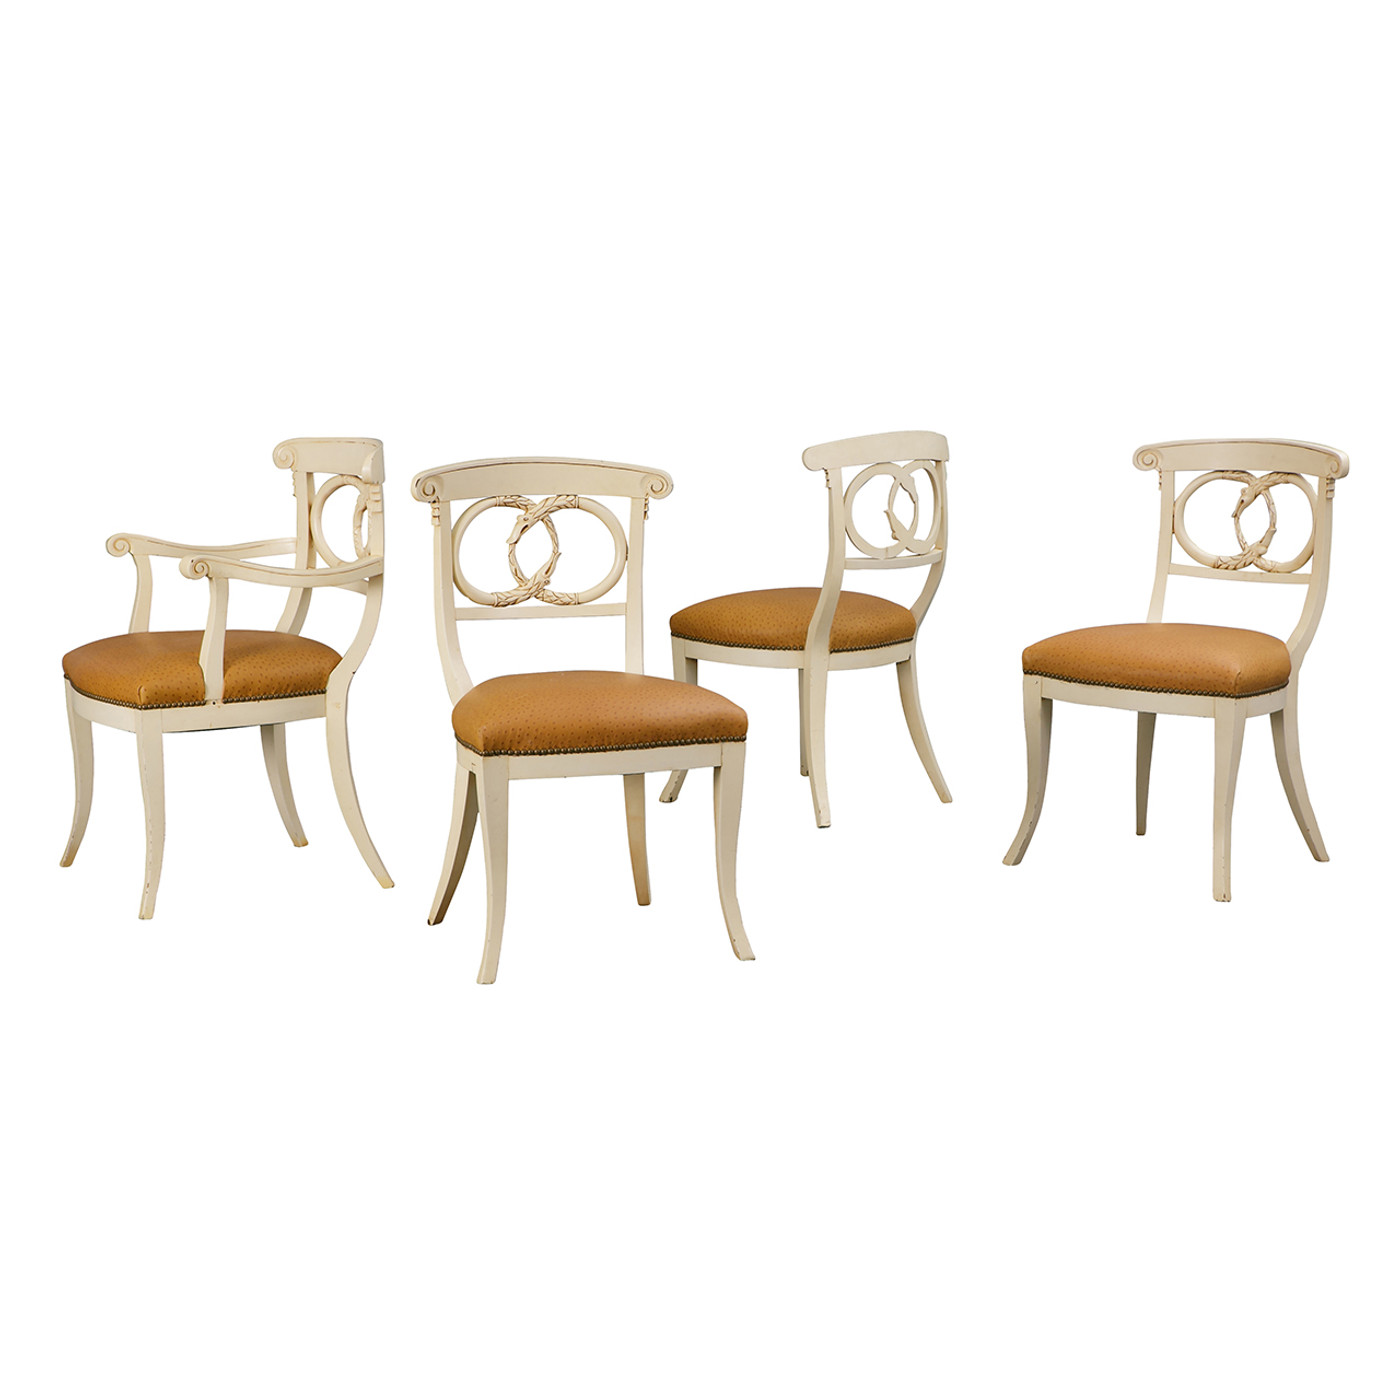 Carved Serpent Morif Chairs (S/4, 1-A & 3-S)